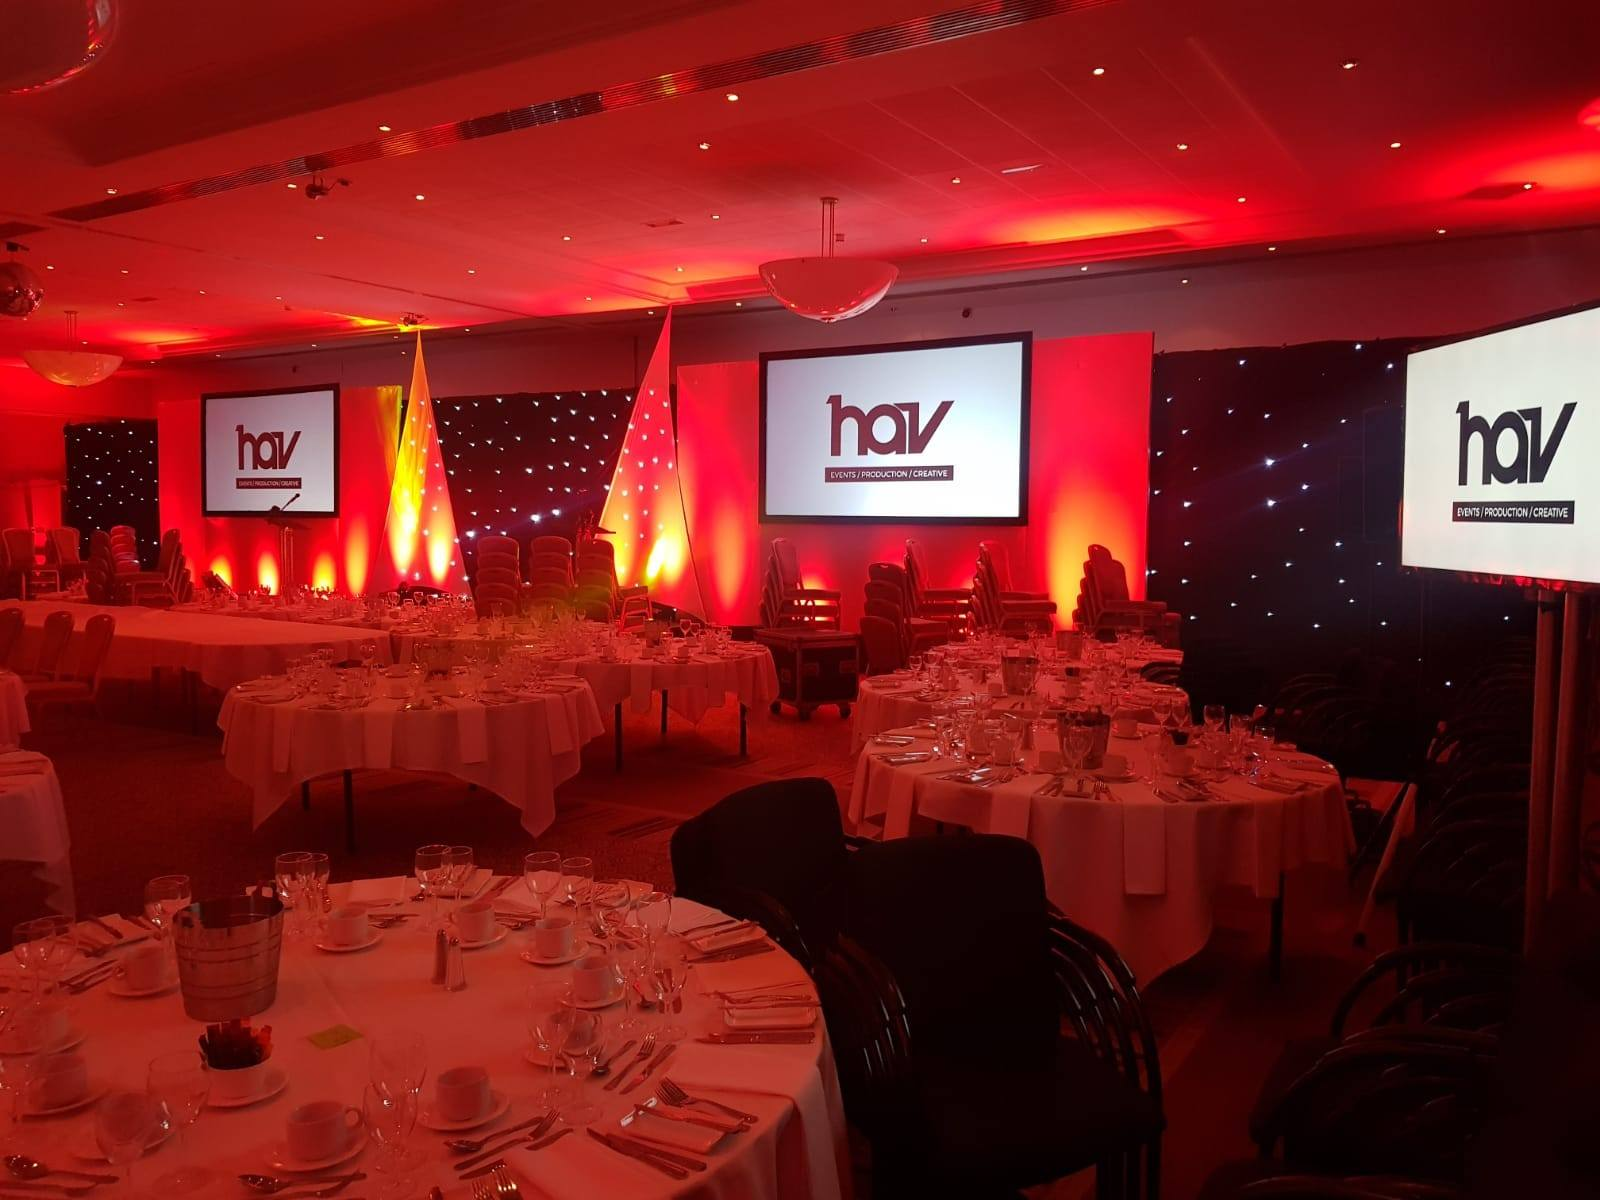 HAV awards ceremony showing stage set lighting and projection screens